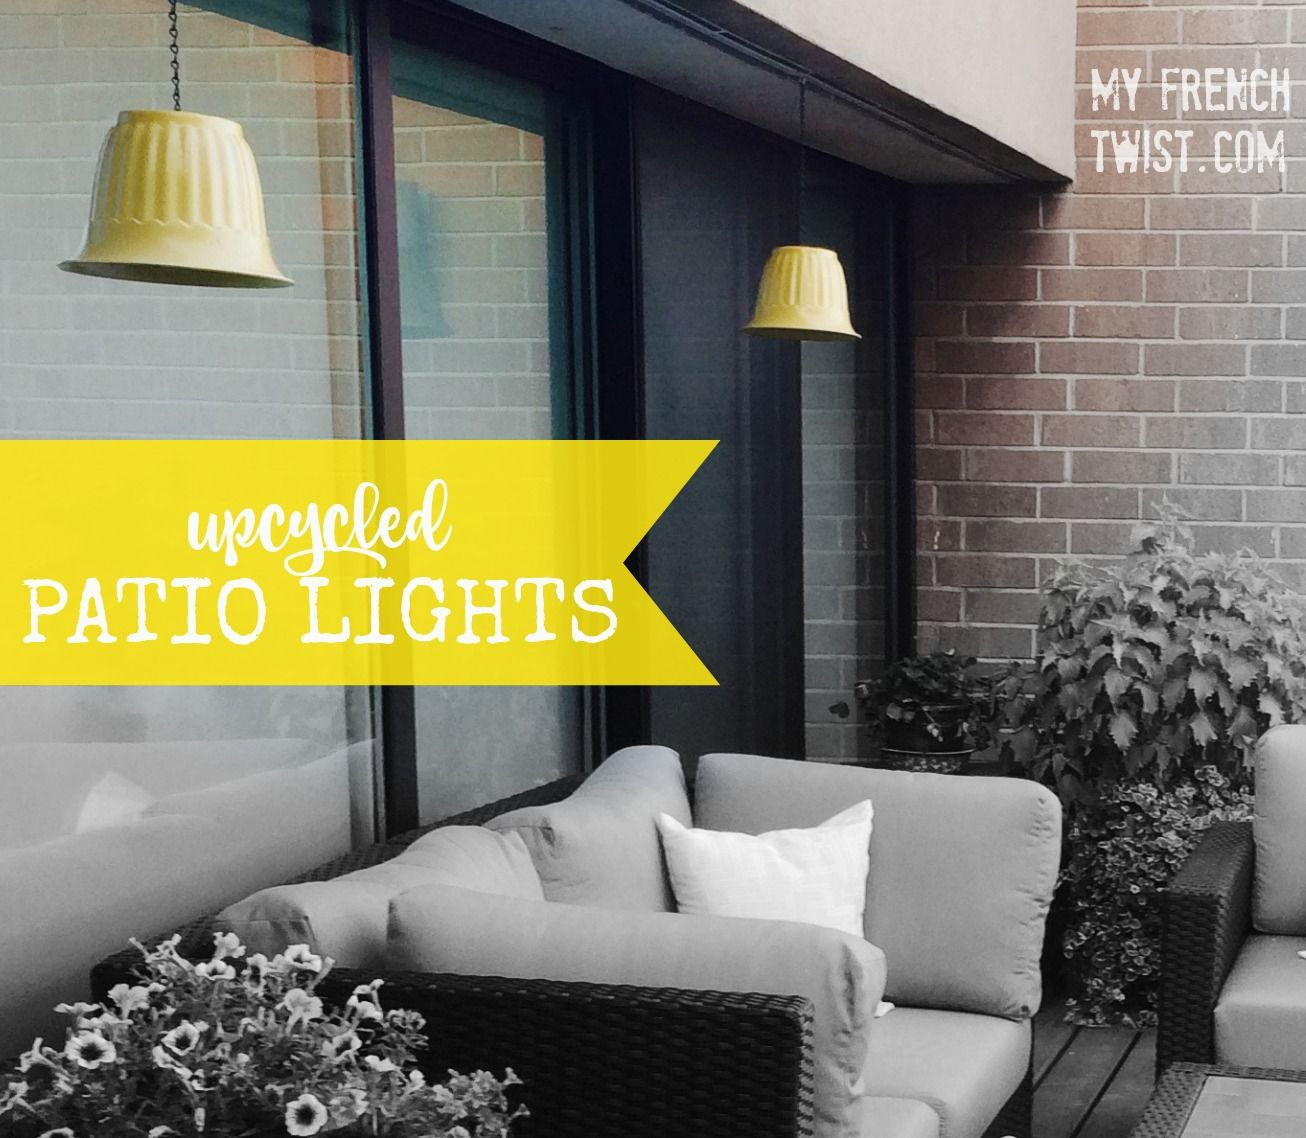 Upcycled flower pots into hanging patio lights! @myfrenchtwist.com ...